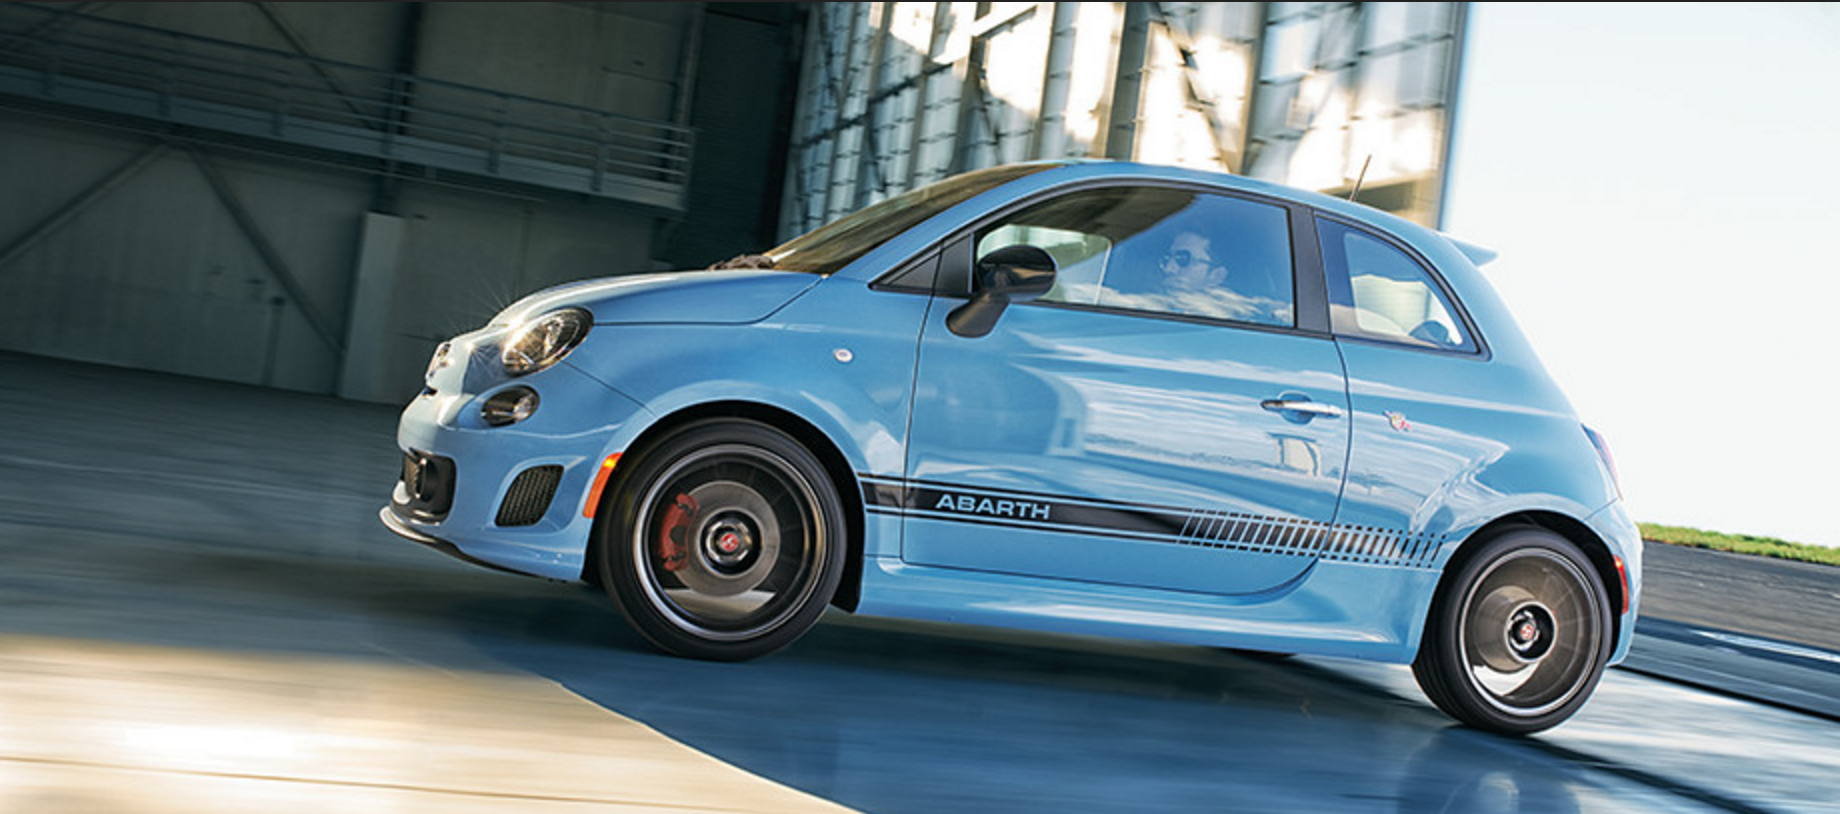 Fiat 500 Abarth8.png